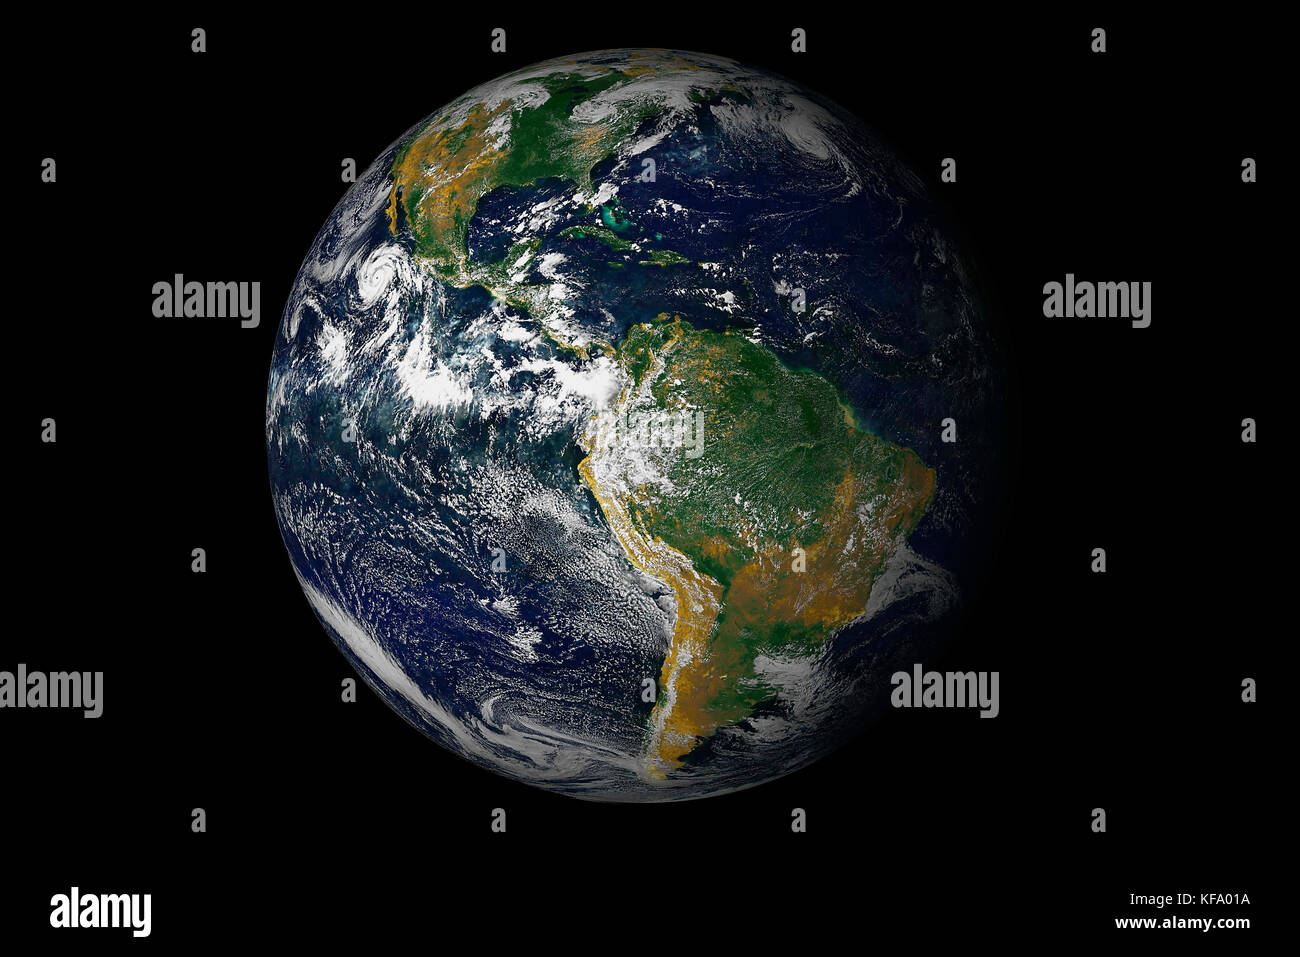 Earth, South America as viewed from space. - Stock Image